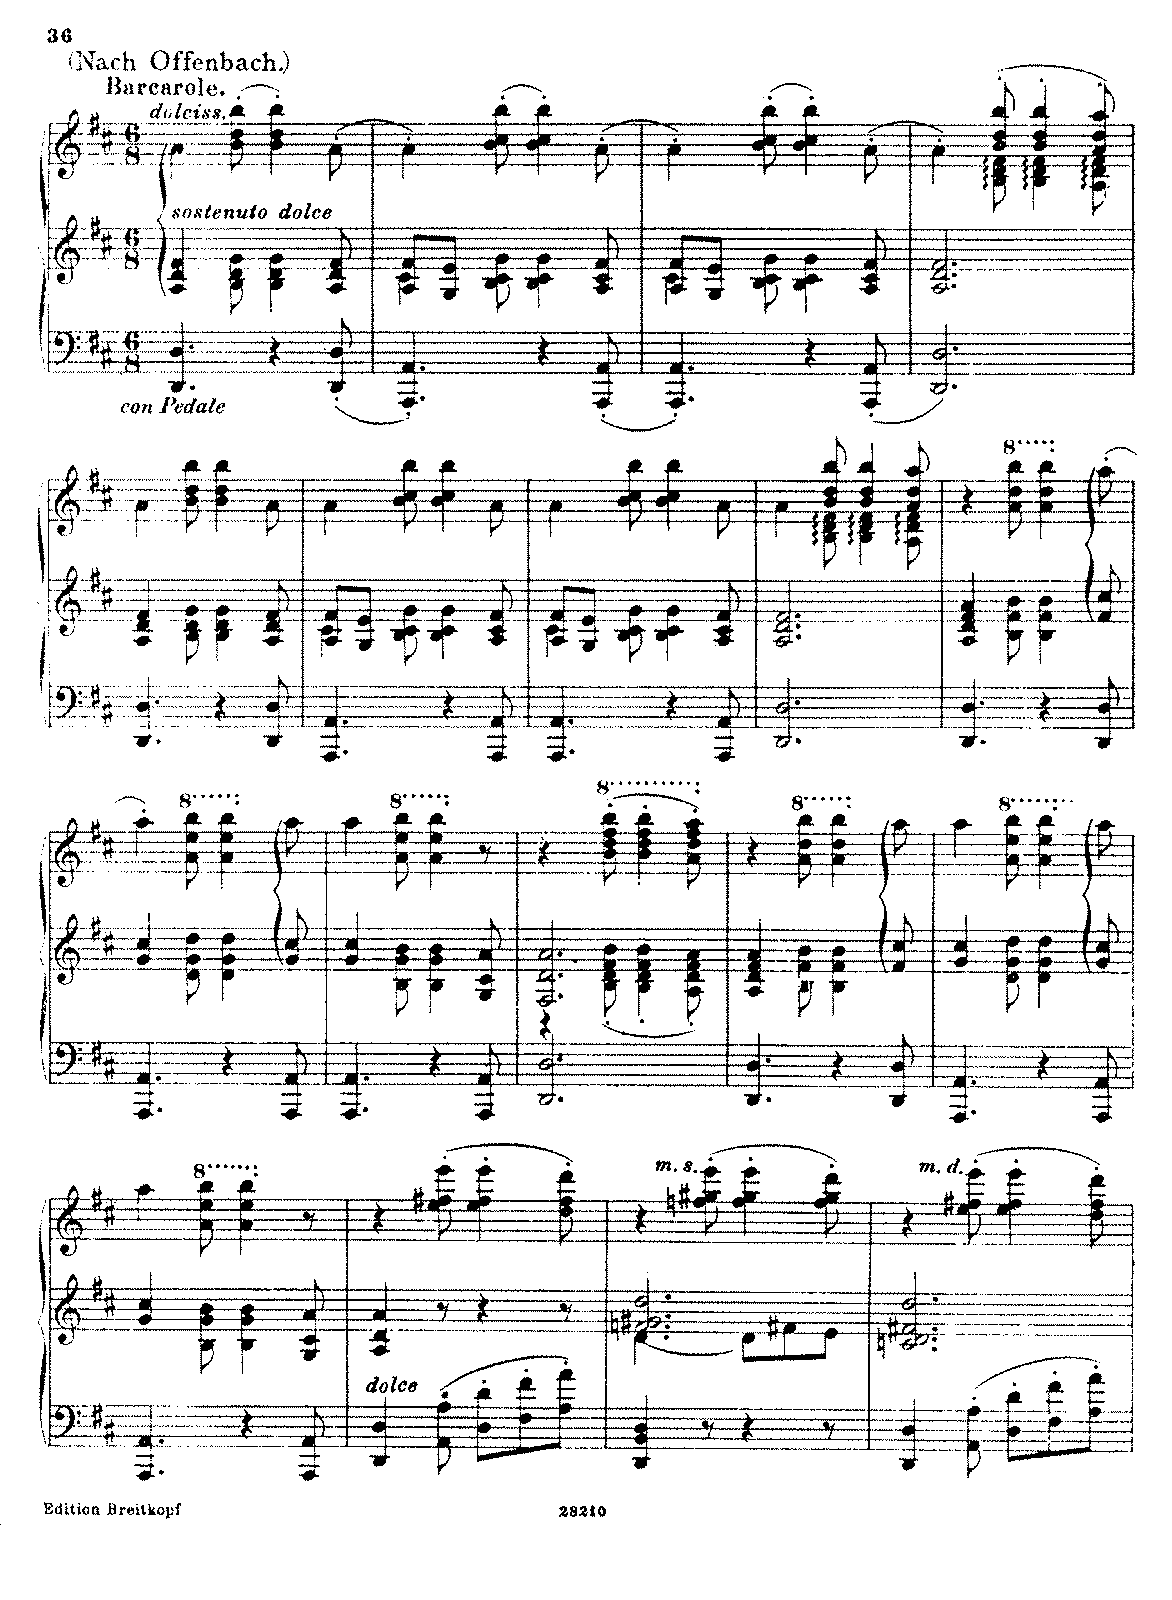 PMLP79101-Offenbach Busoni Barcarole from The Tales of Hoffman KU5 Part1 VI BH W pn28210.pdf